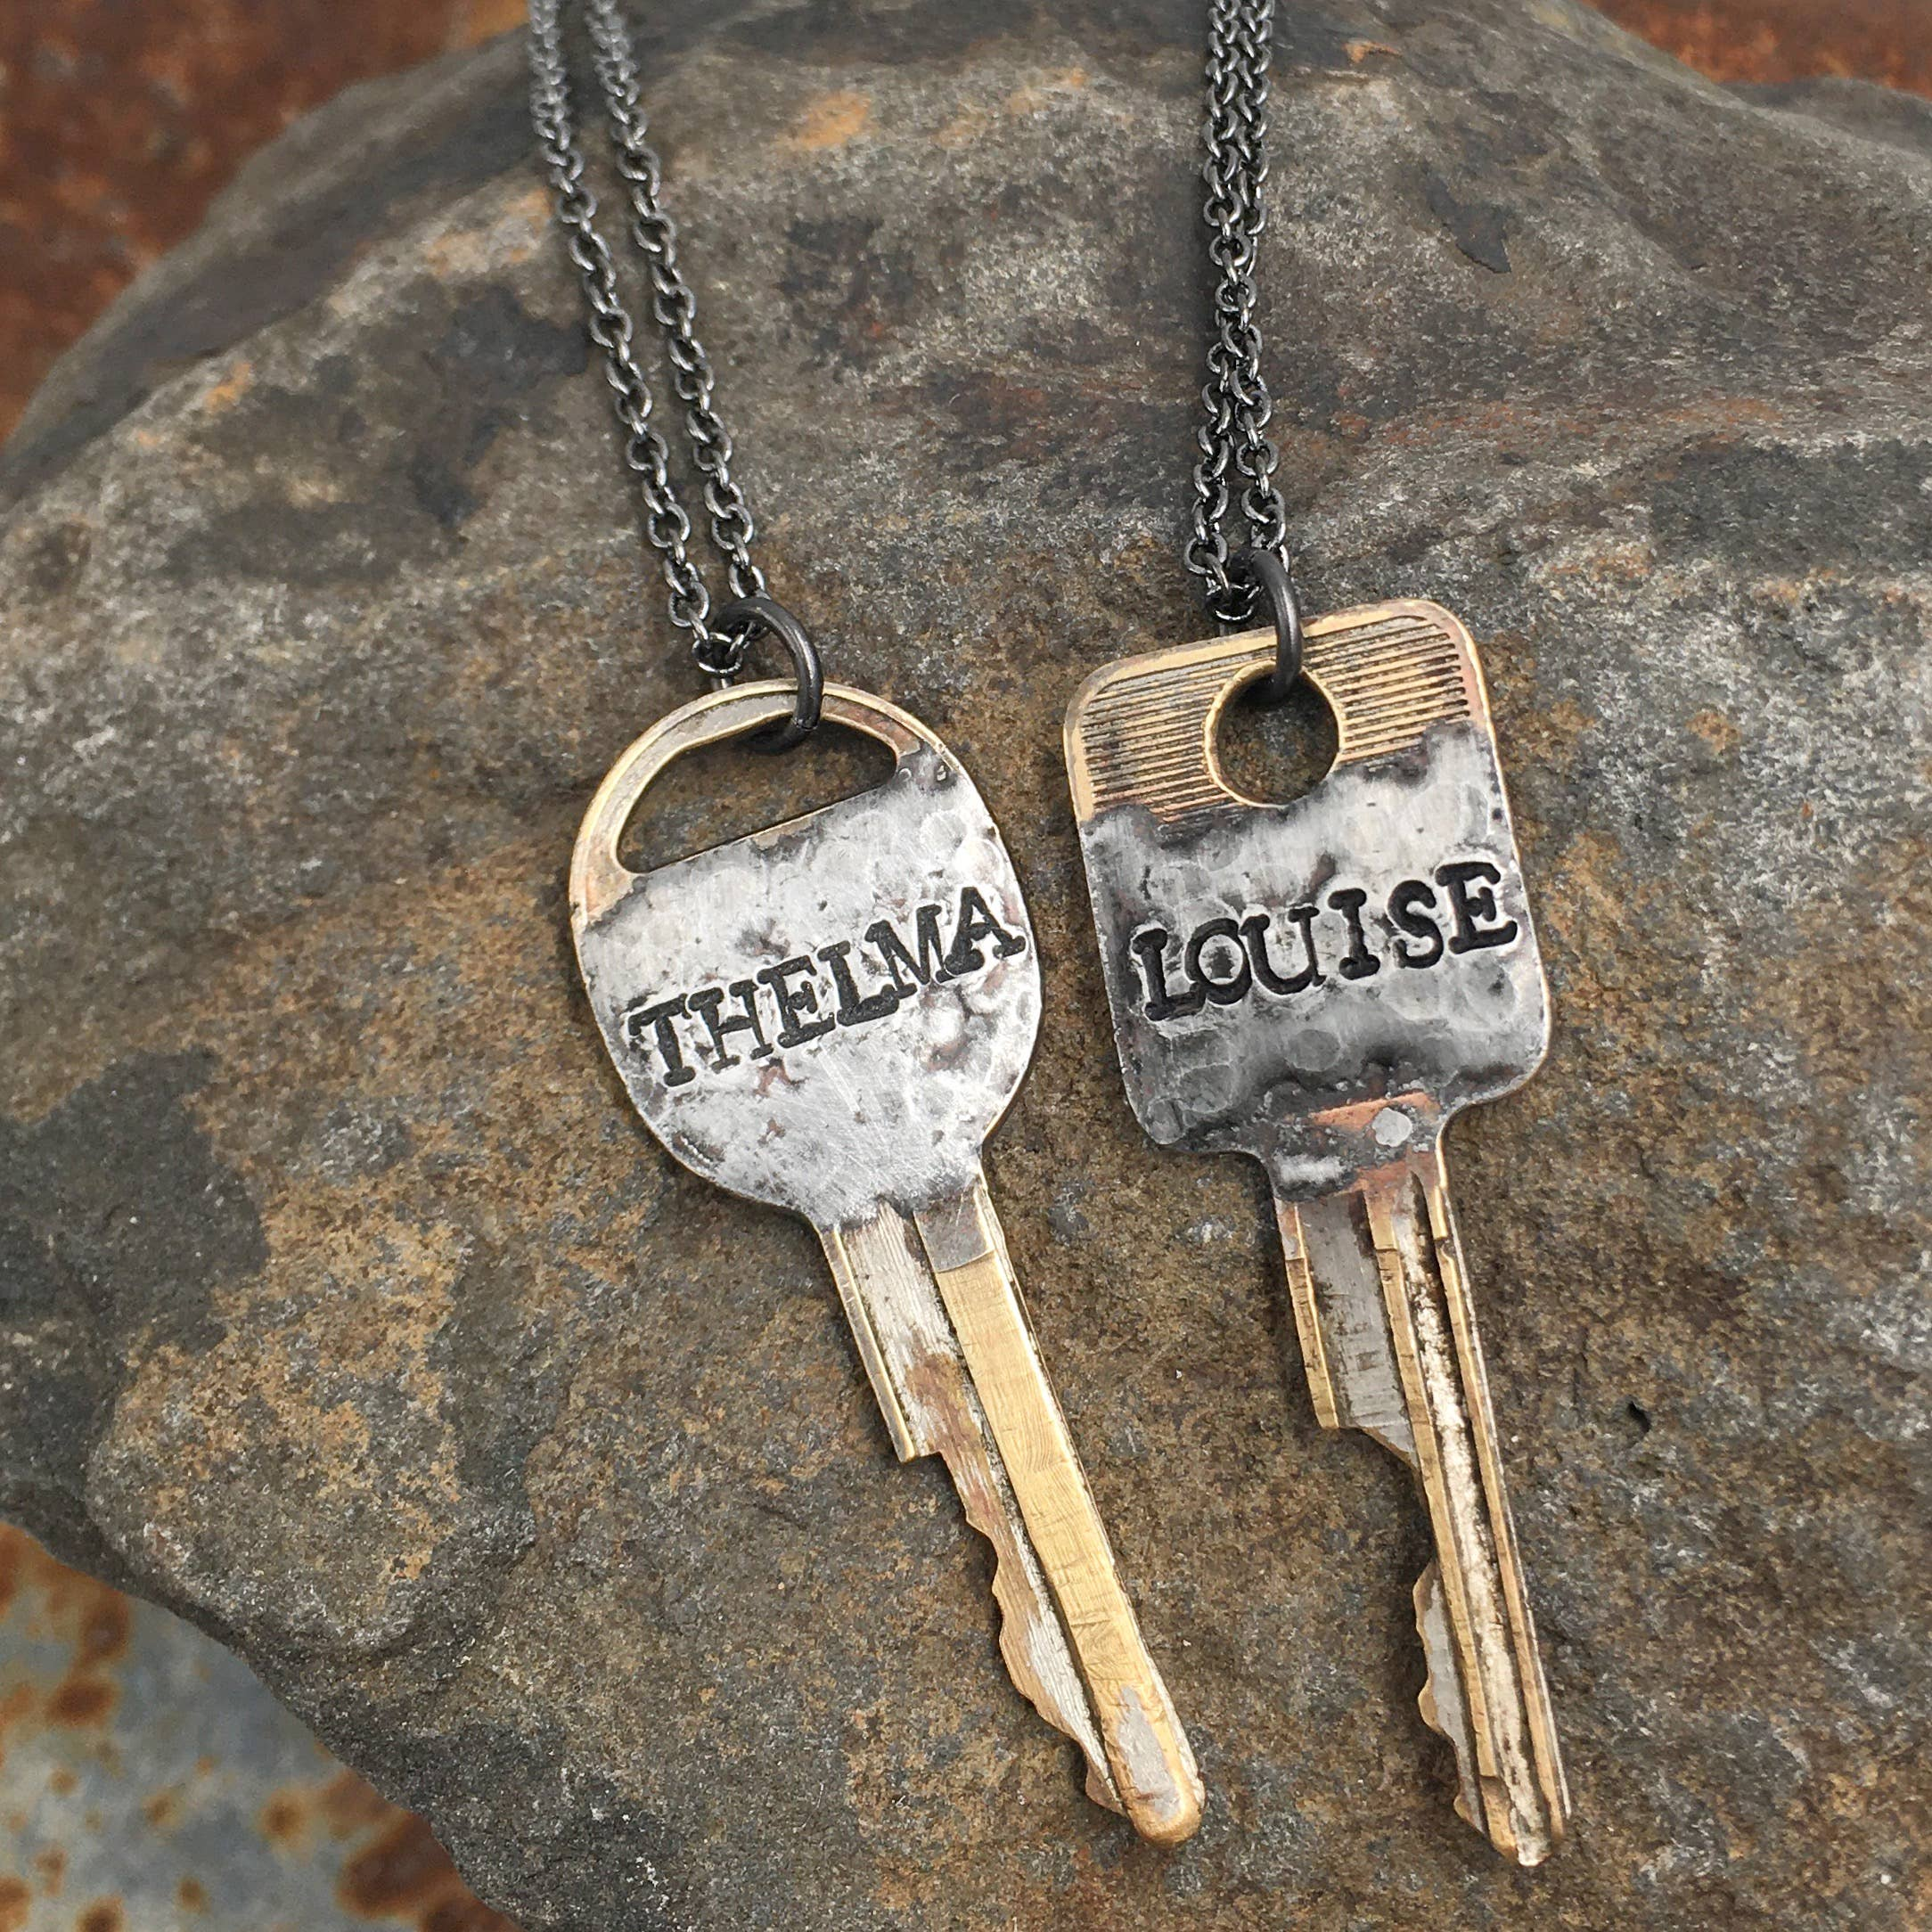 Buffalo Girls Salvage - Solder Recycled Key Necklace - Thelma or Louise